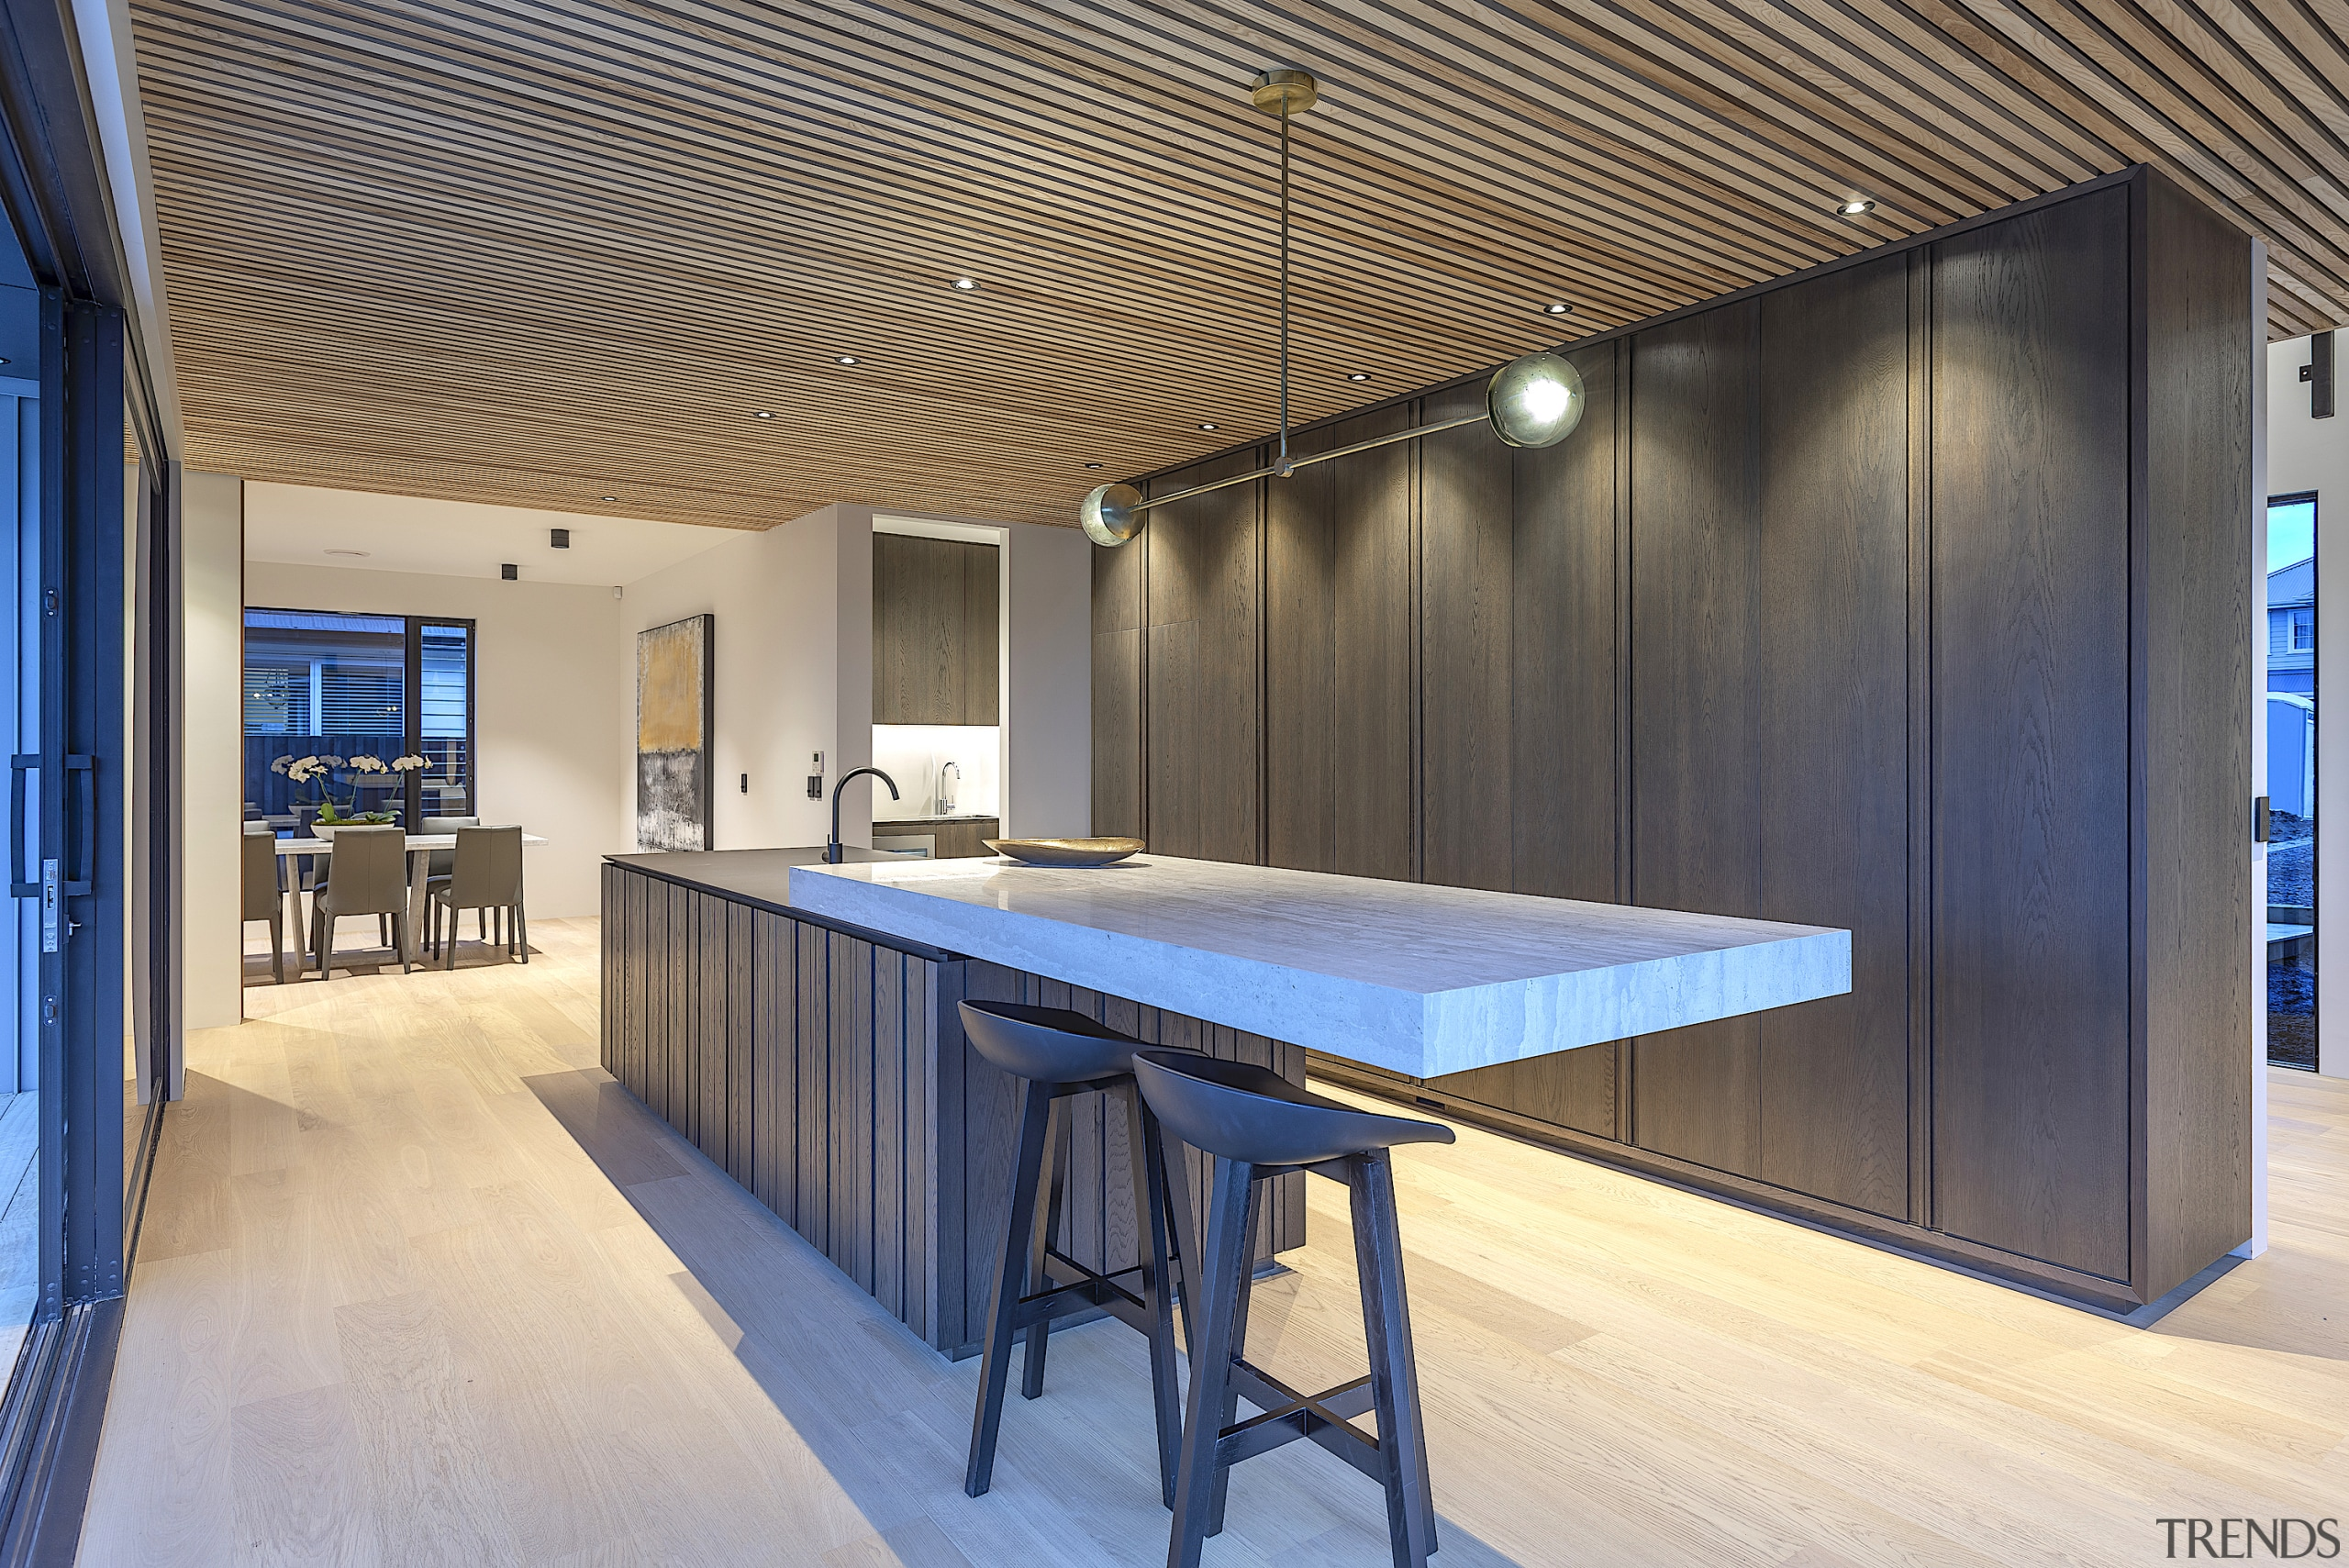 Hangingoutinstyle–for this kitchen by Cube Dentro a cantilevered architecture, building, ceiling, design, floor, flooring, furniture, glass, hardwood, home, house, interior design, office, property, real estate, room, table, wood, gray